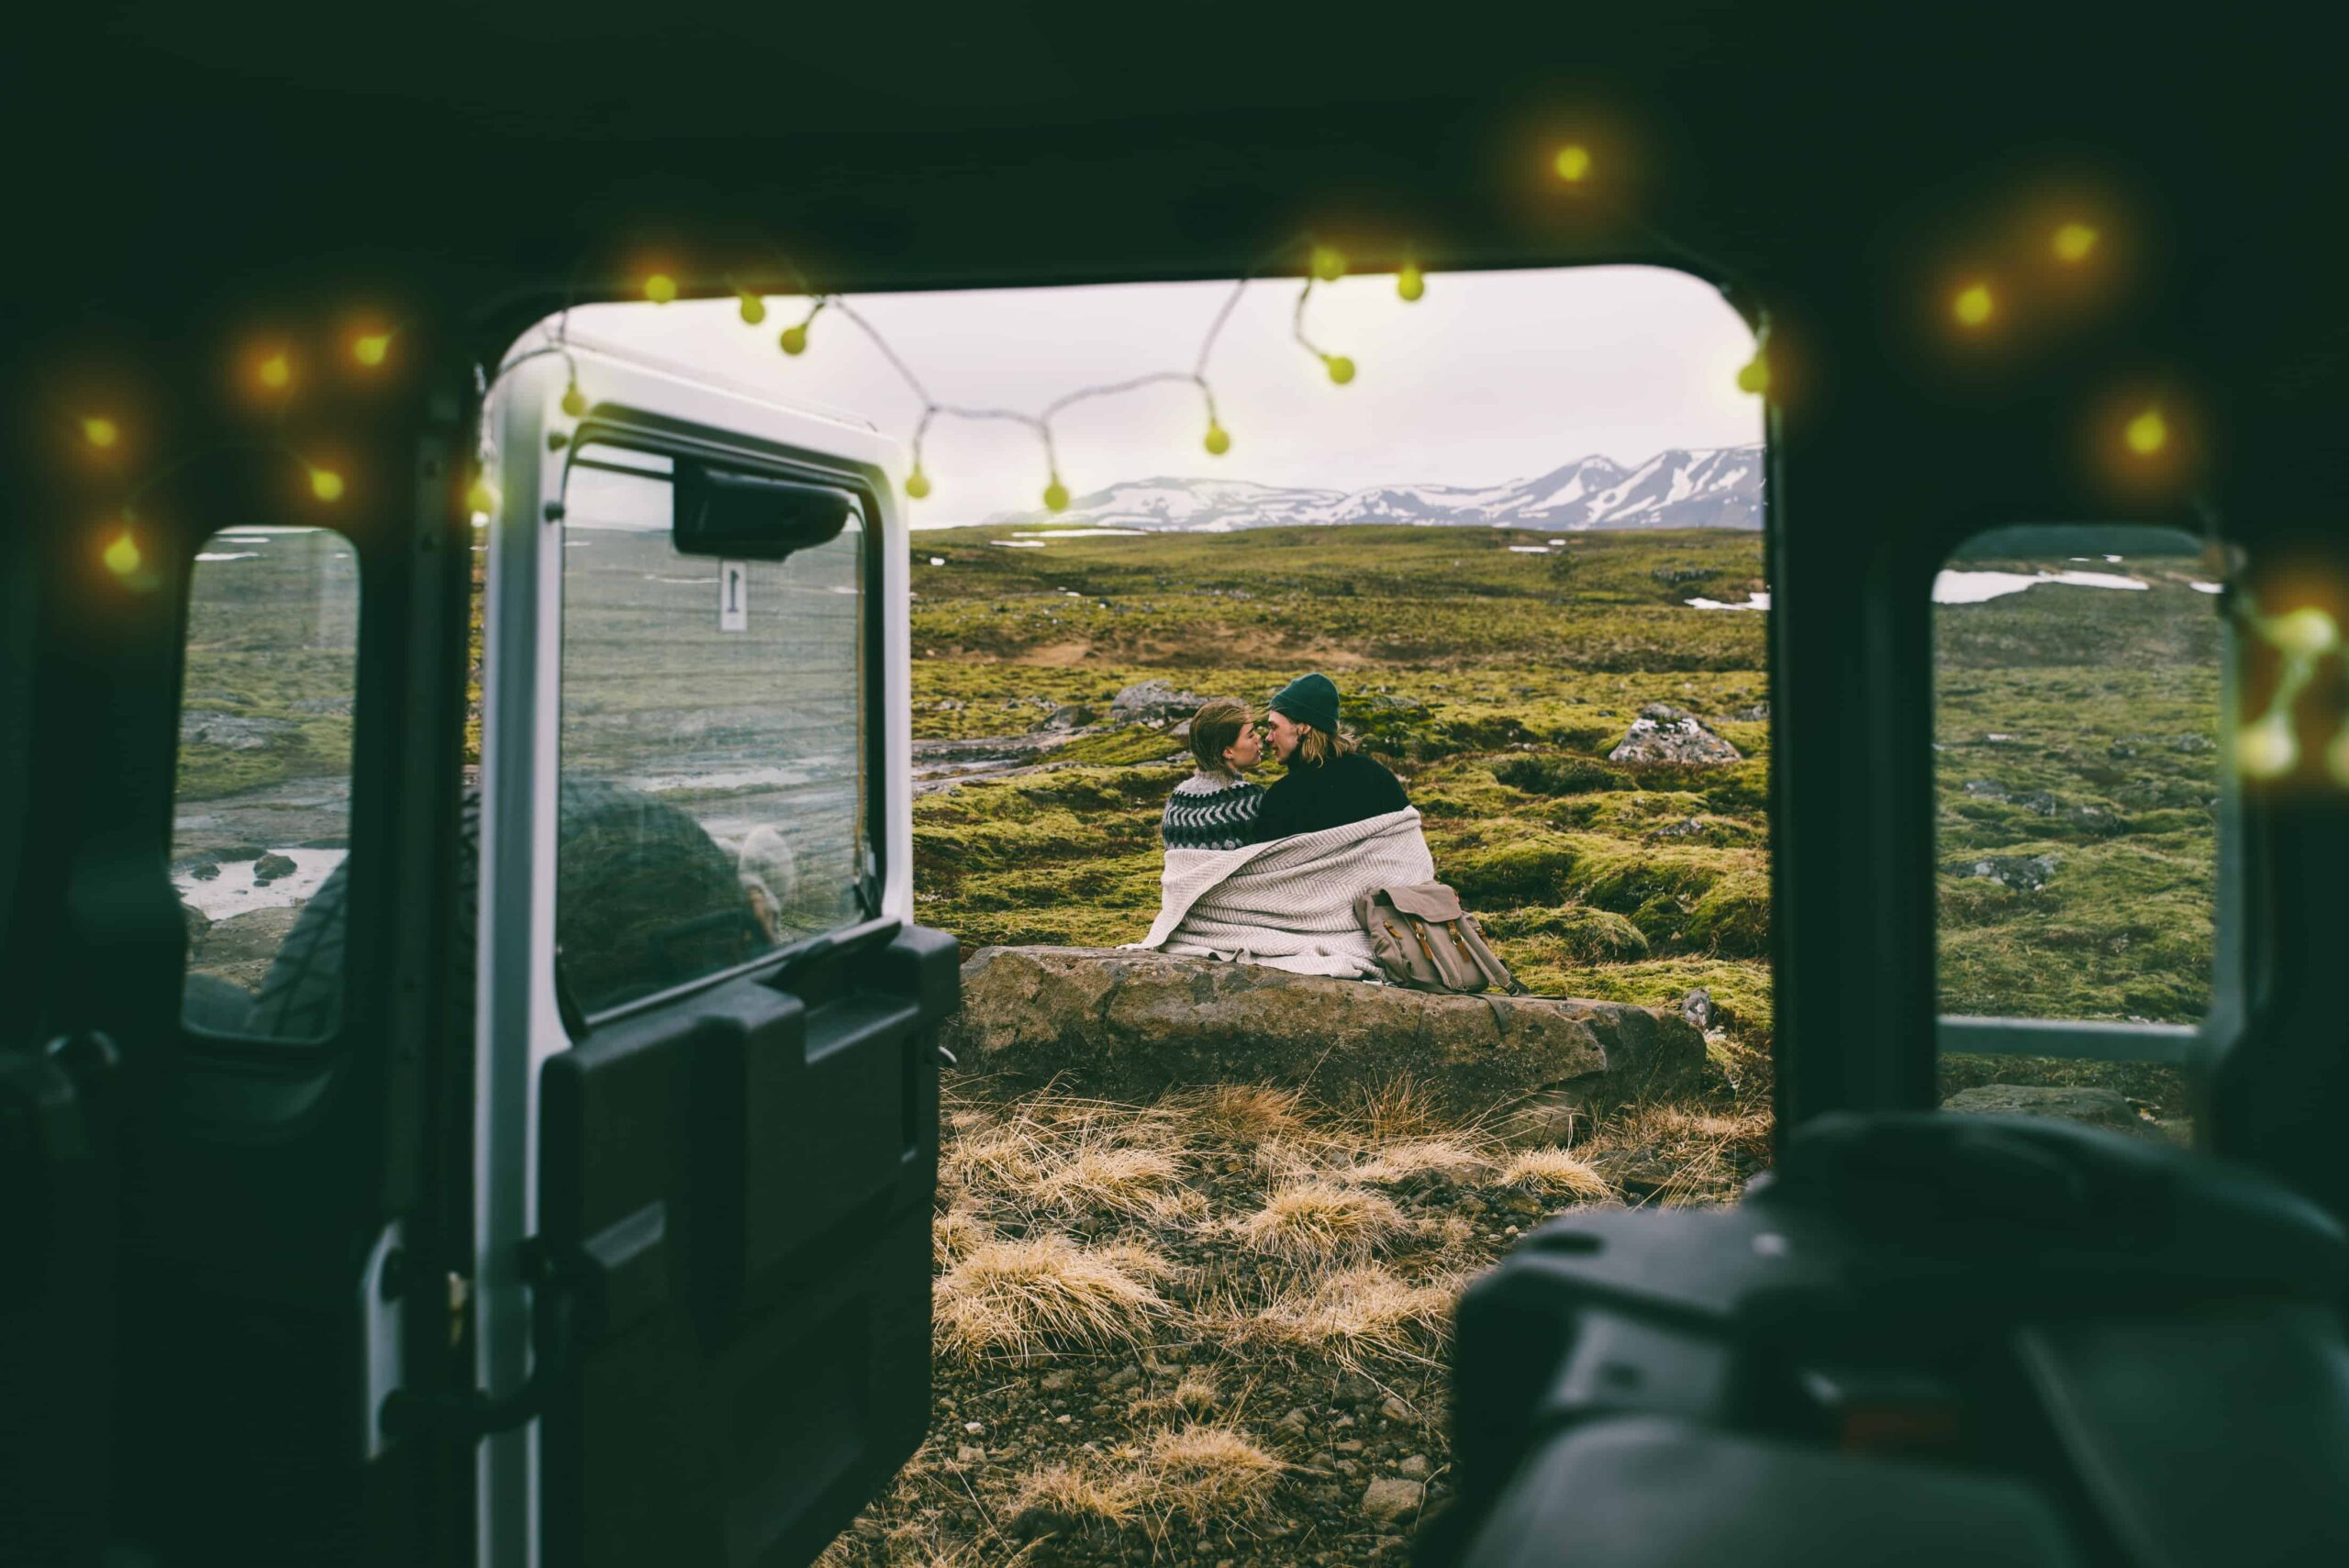 Two people in Icelandic wool sweater checking a map in a camper van in Iceland